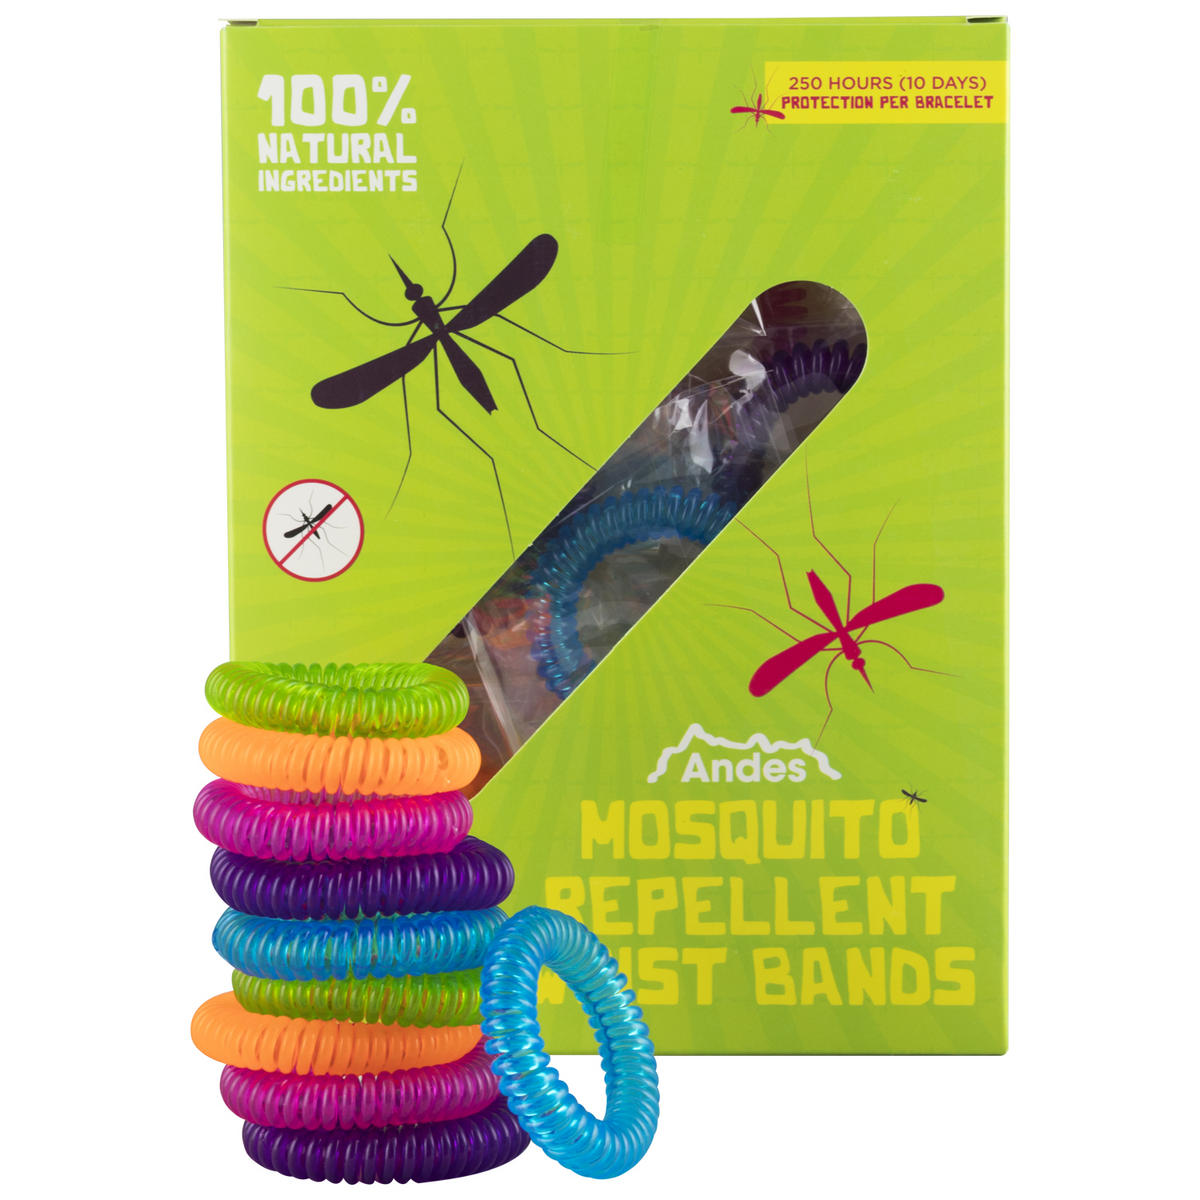 Andes Mosquito Repellent Wrist Bands 10 PACK